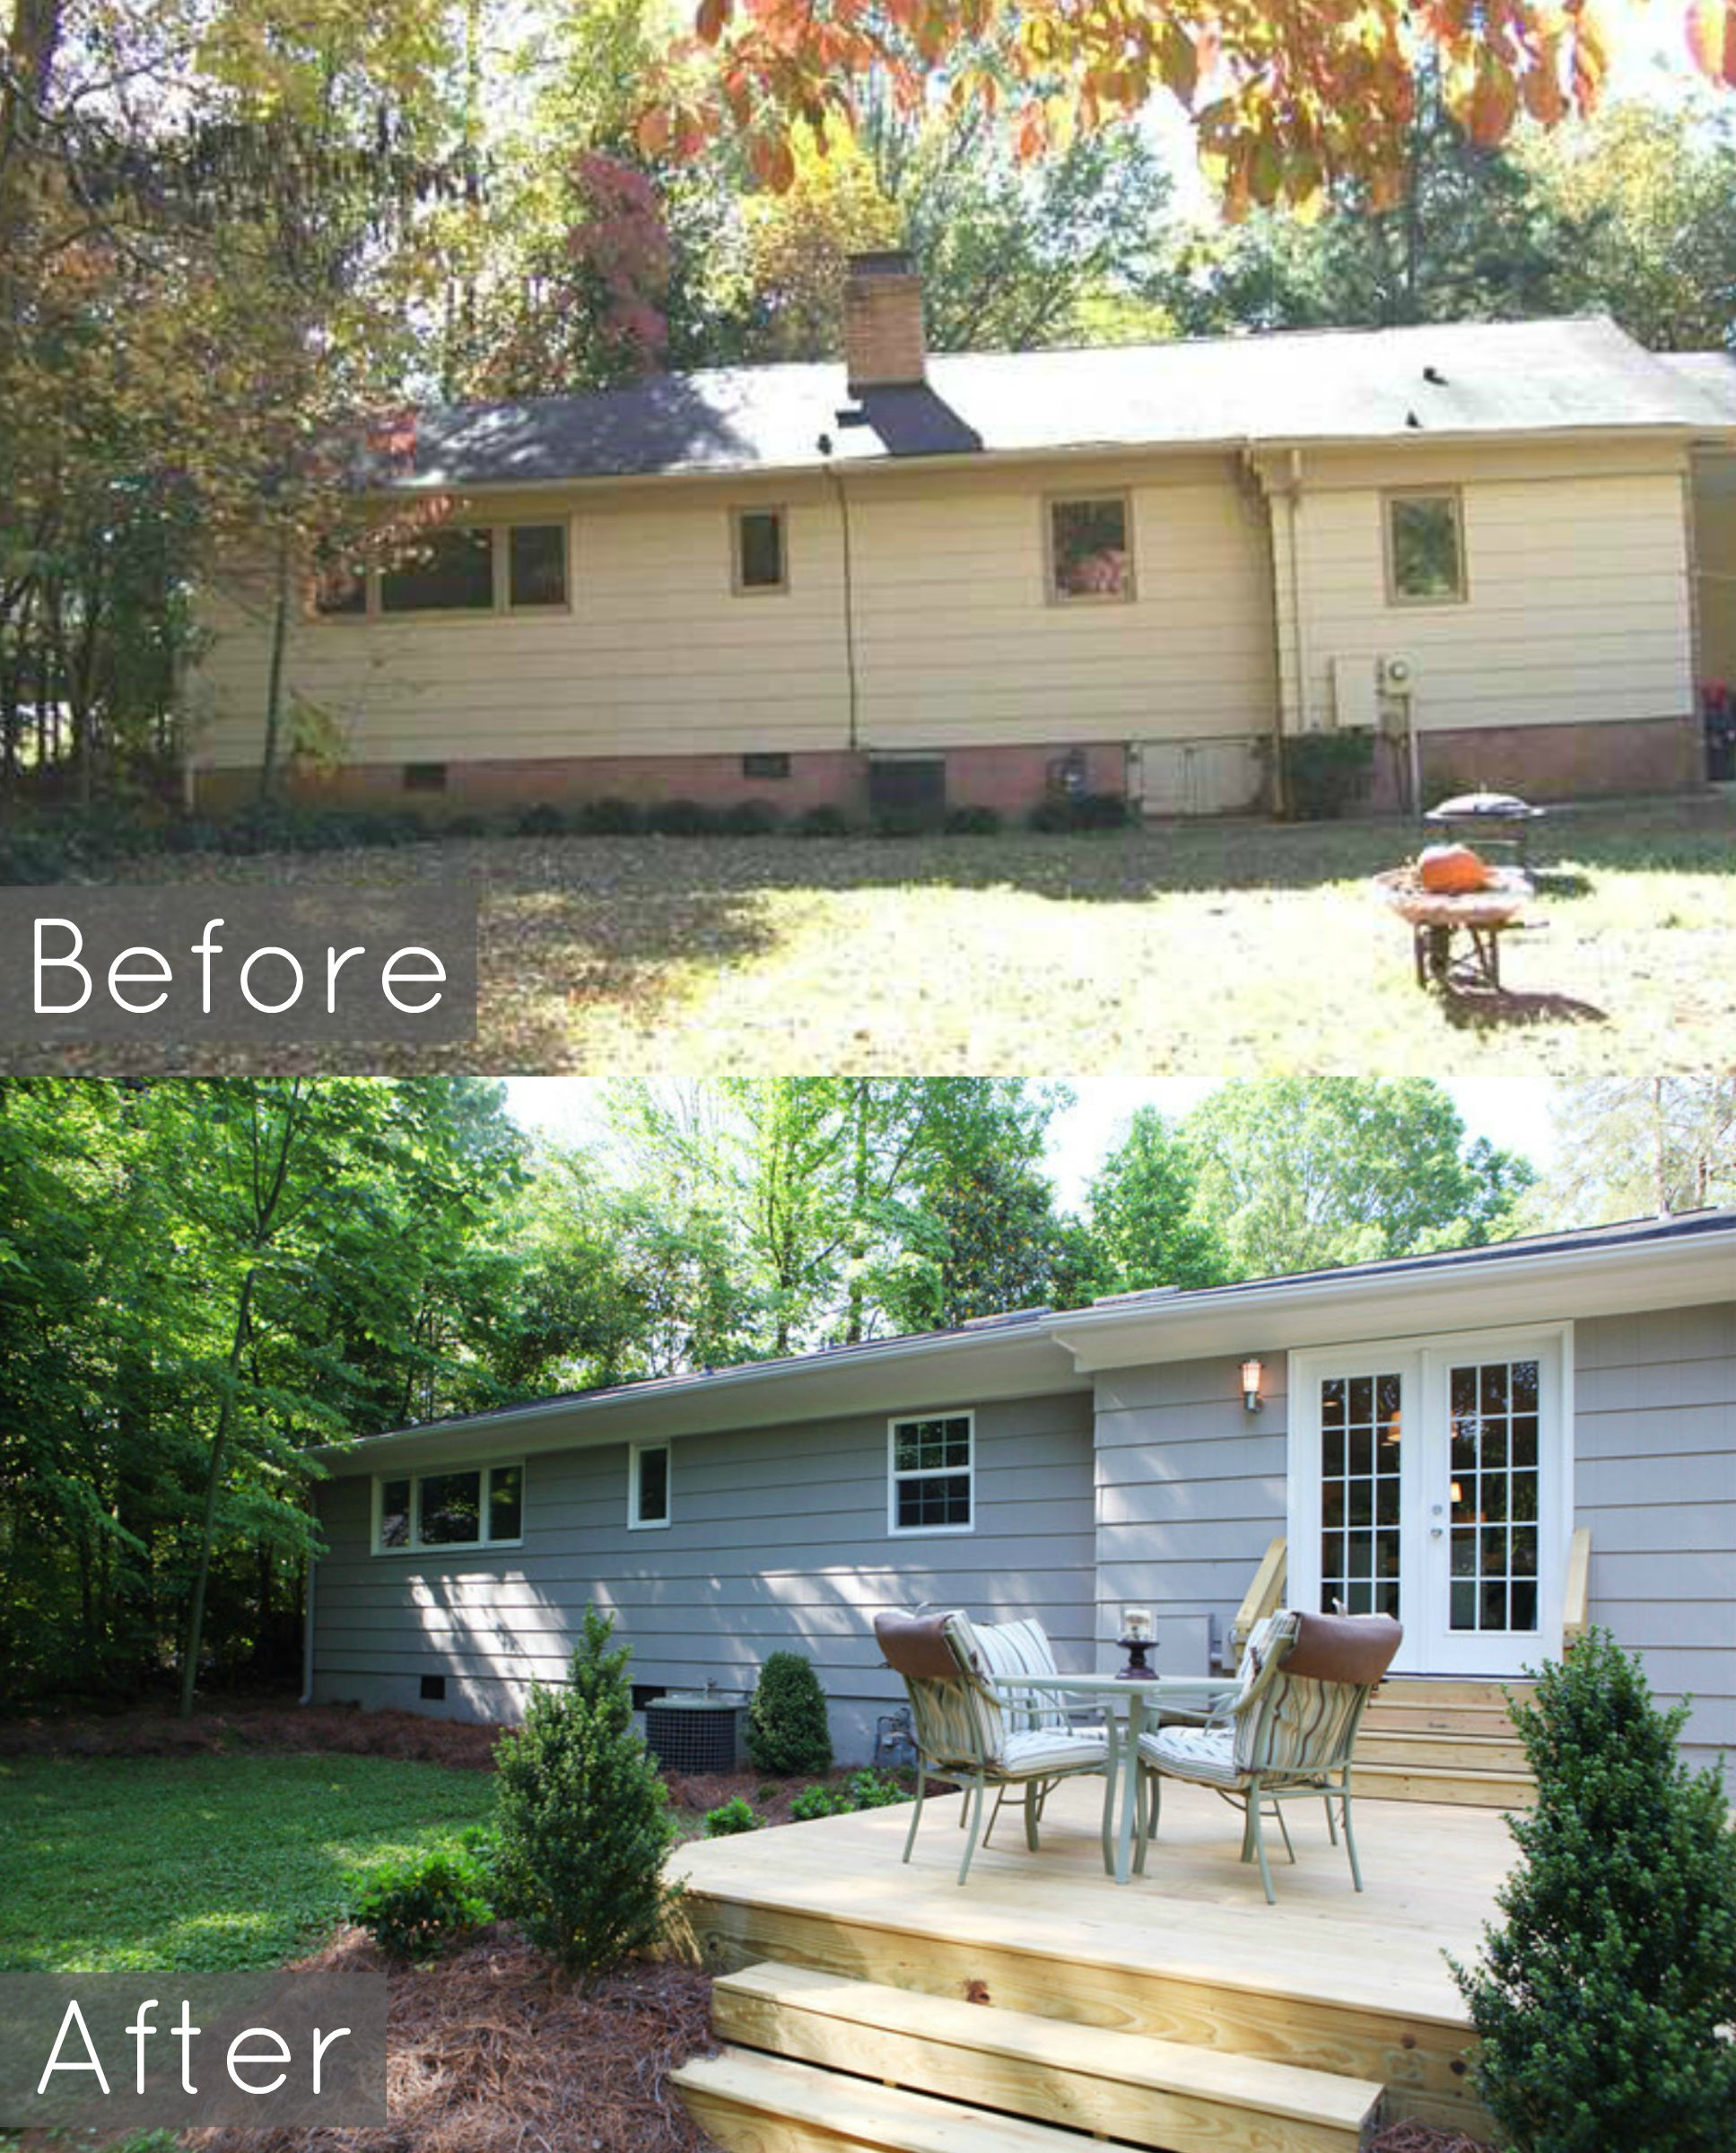 Before And After Pic Of Ranch Backyard- Painted Ranch, New